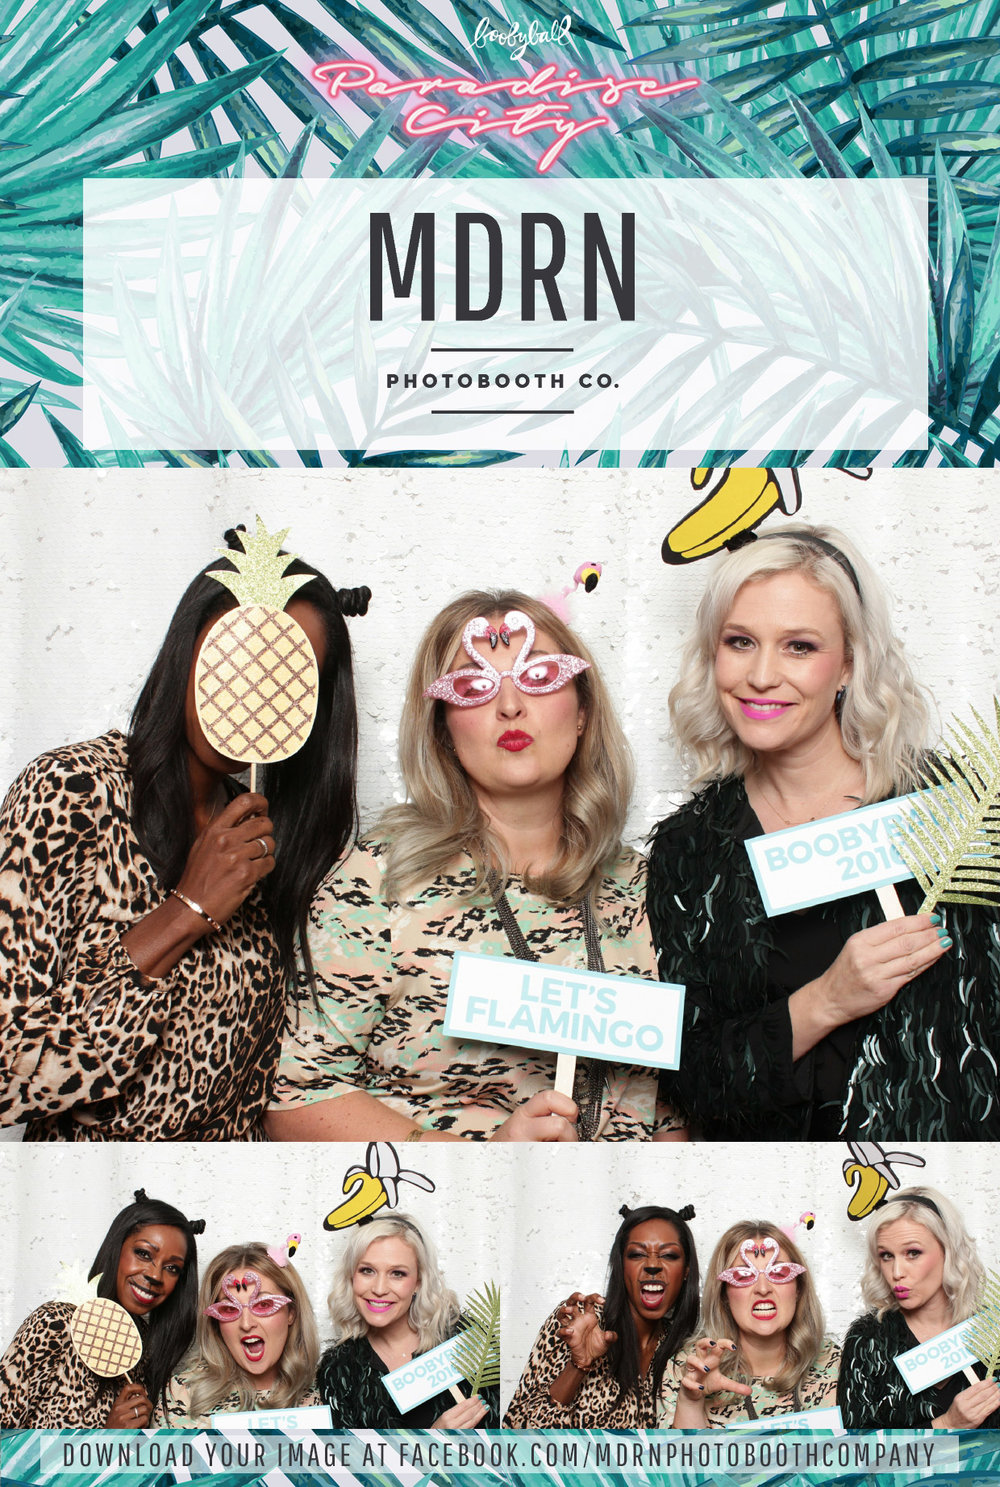 MDRN-PHOTO-BOOTH-OTTAWA-Boobyball-2016-70505.jpg